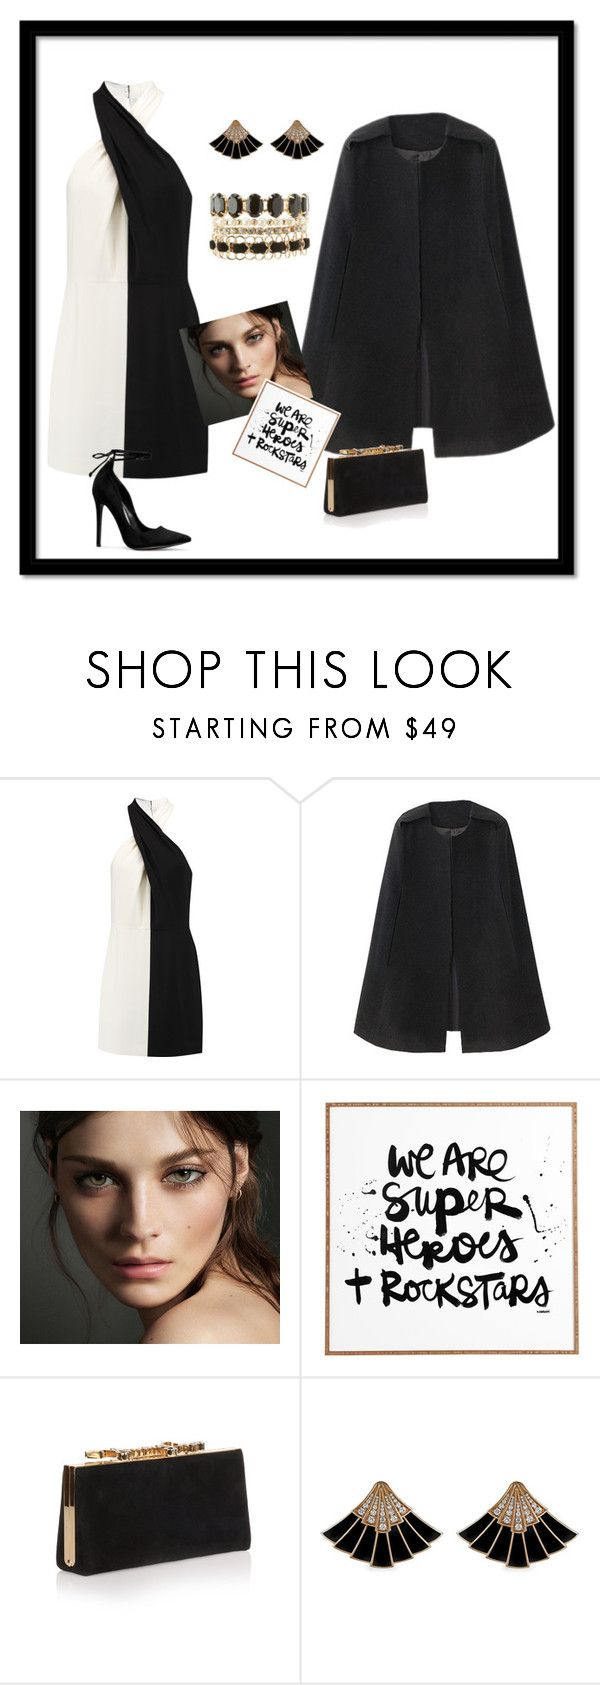 """""""Basic party"""" by rania-kherraf ❤ liked on Polyvore featuring Halston Heritage, Burberry, DENY Designs, Jimmy Choo and Charlotte Russe"""